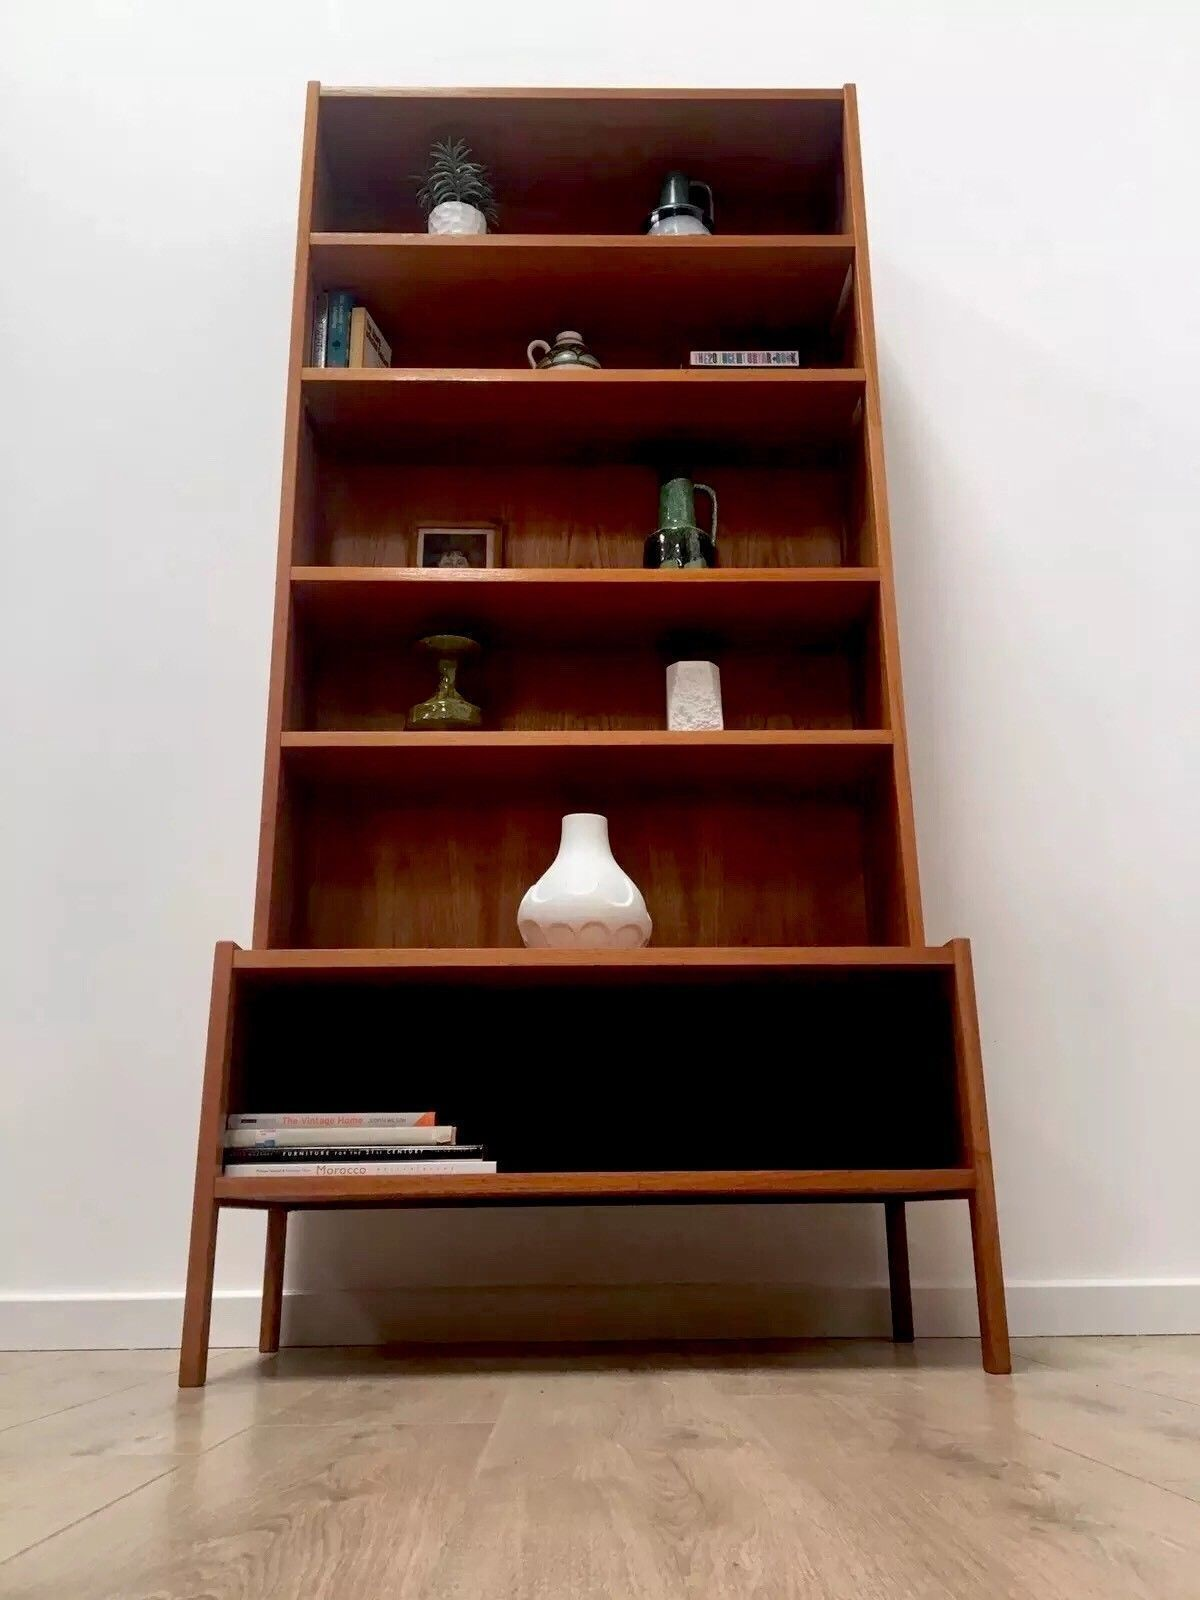 Mid Century Swedish Teak Freestanding Wall Shelving Book Case Display Unit